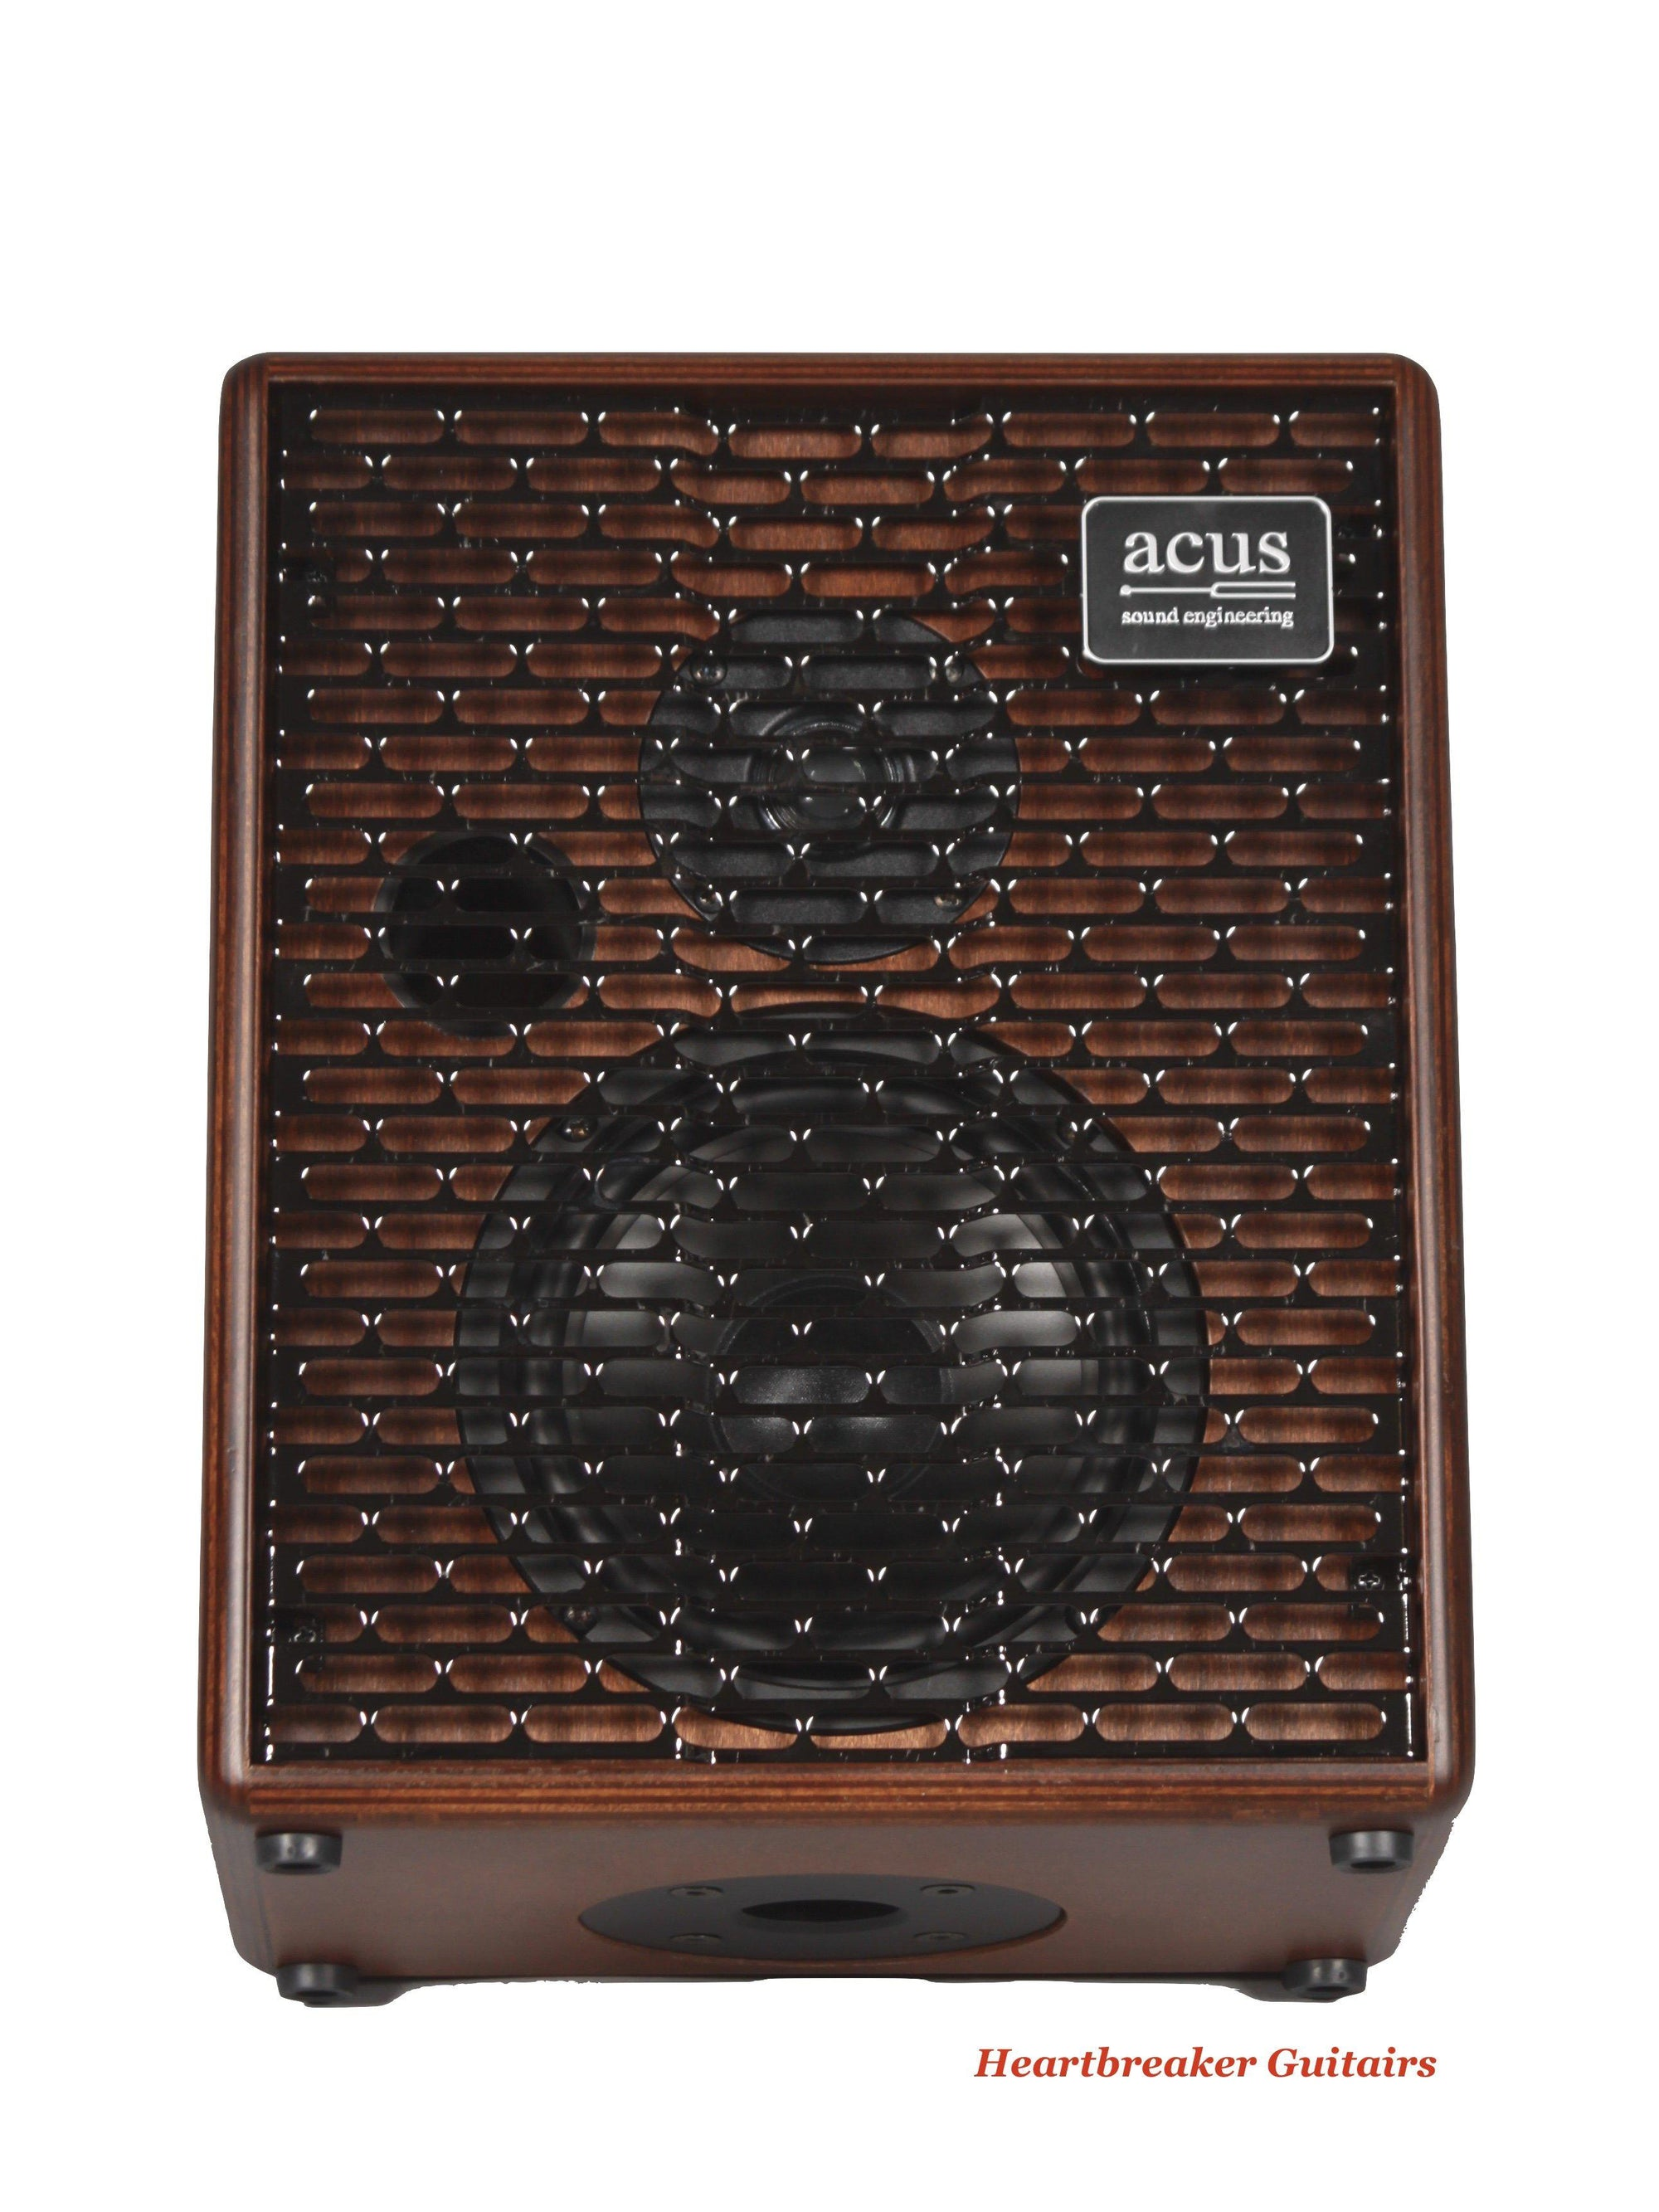 Acus Sound Engineering Acoustic Amp 6T - Heartbreaker Guitars - Heartbreaker Guitars